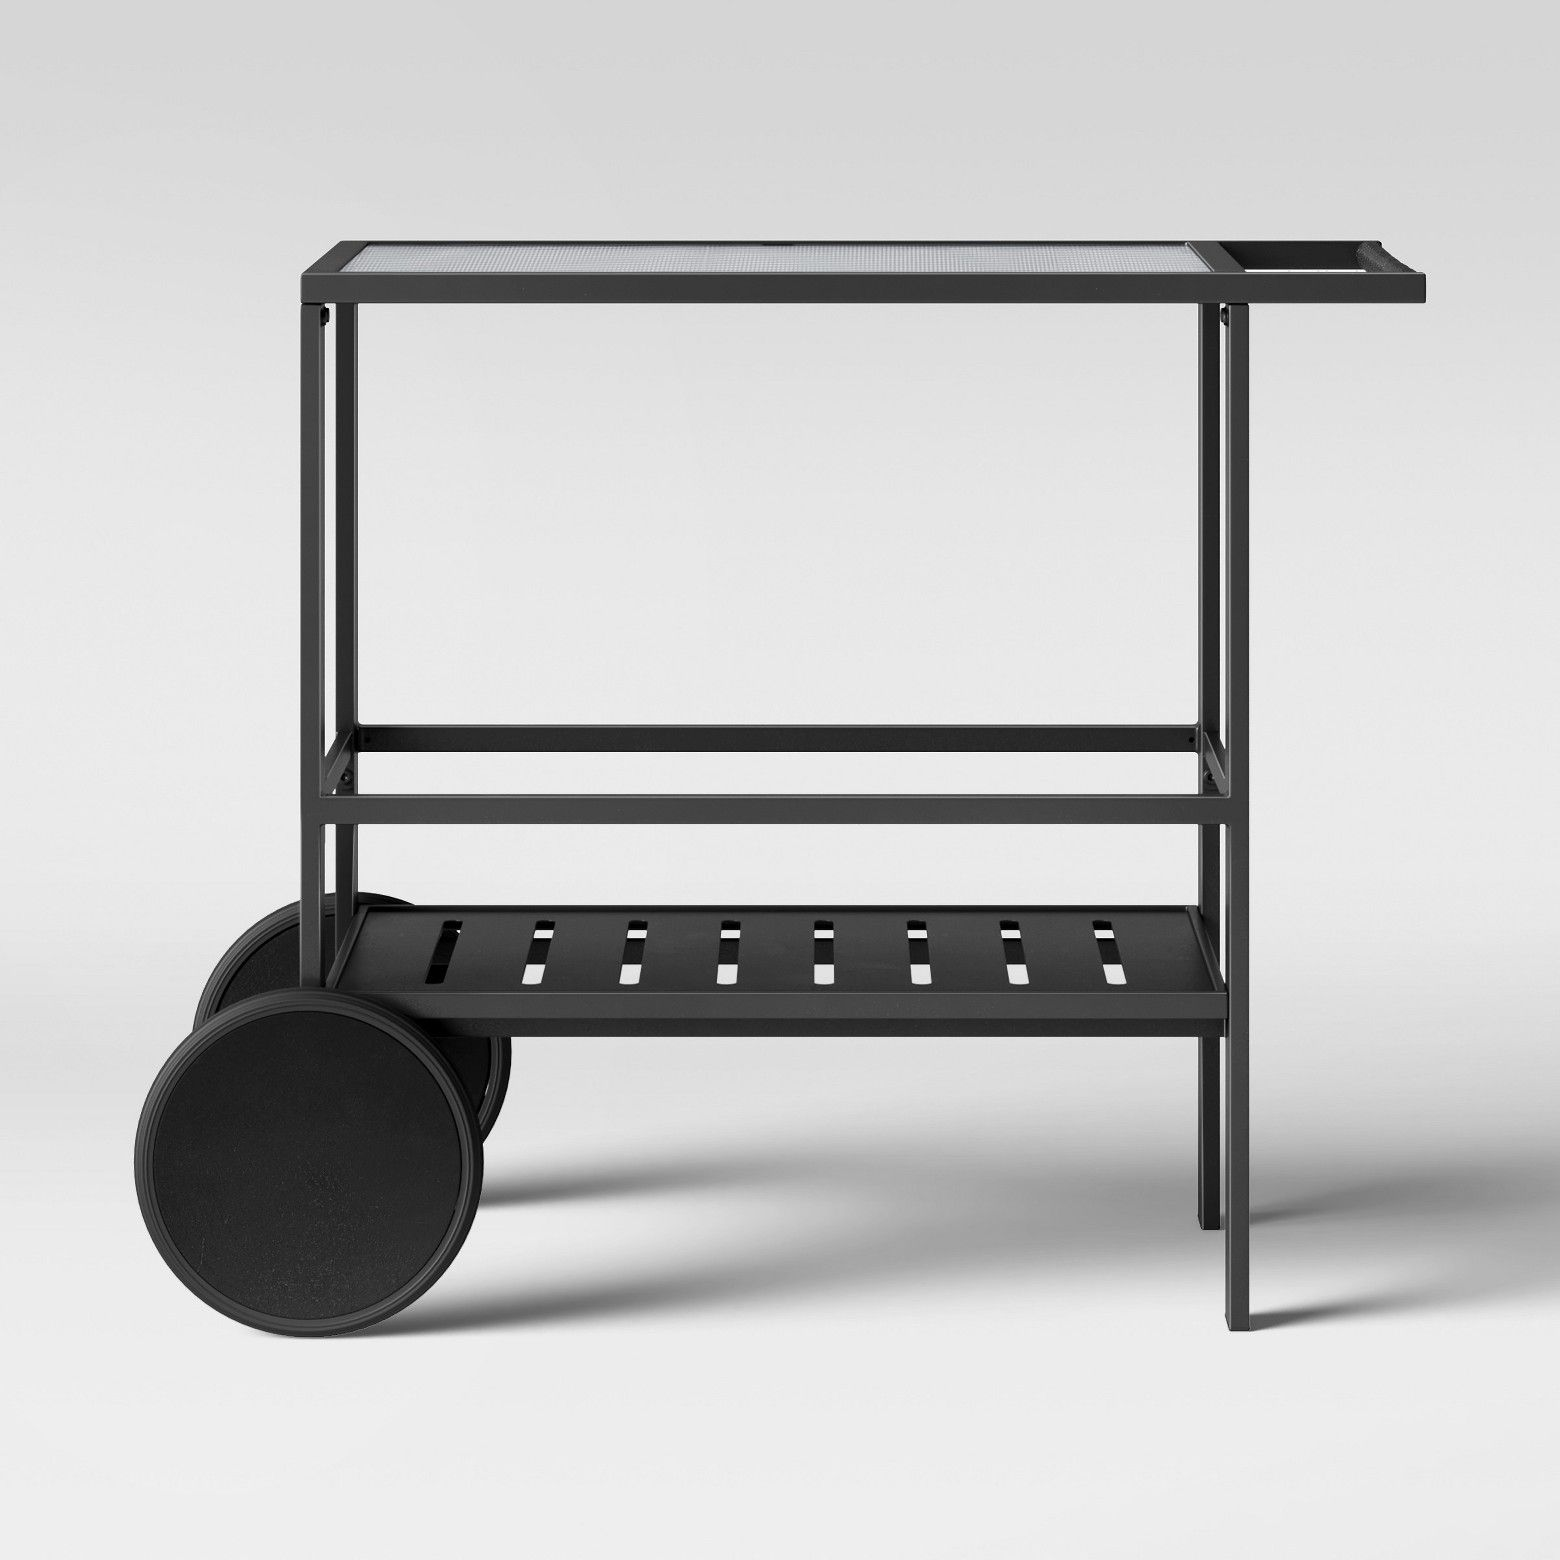 Superieur Standish Patio Bar Cart   Project 62™ : Target